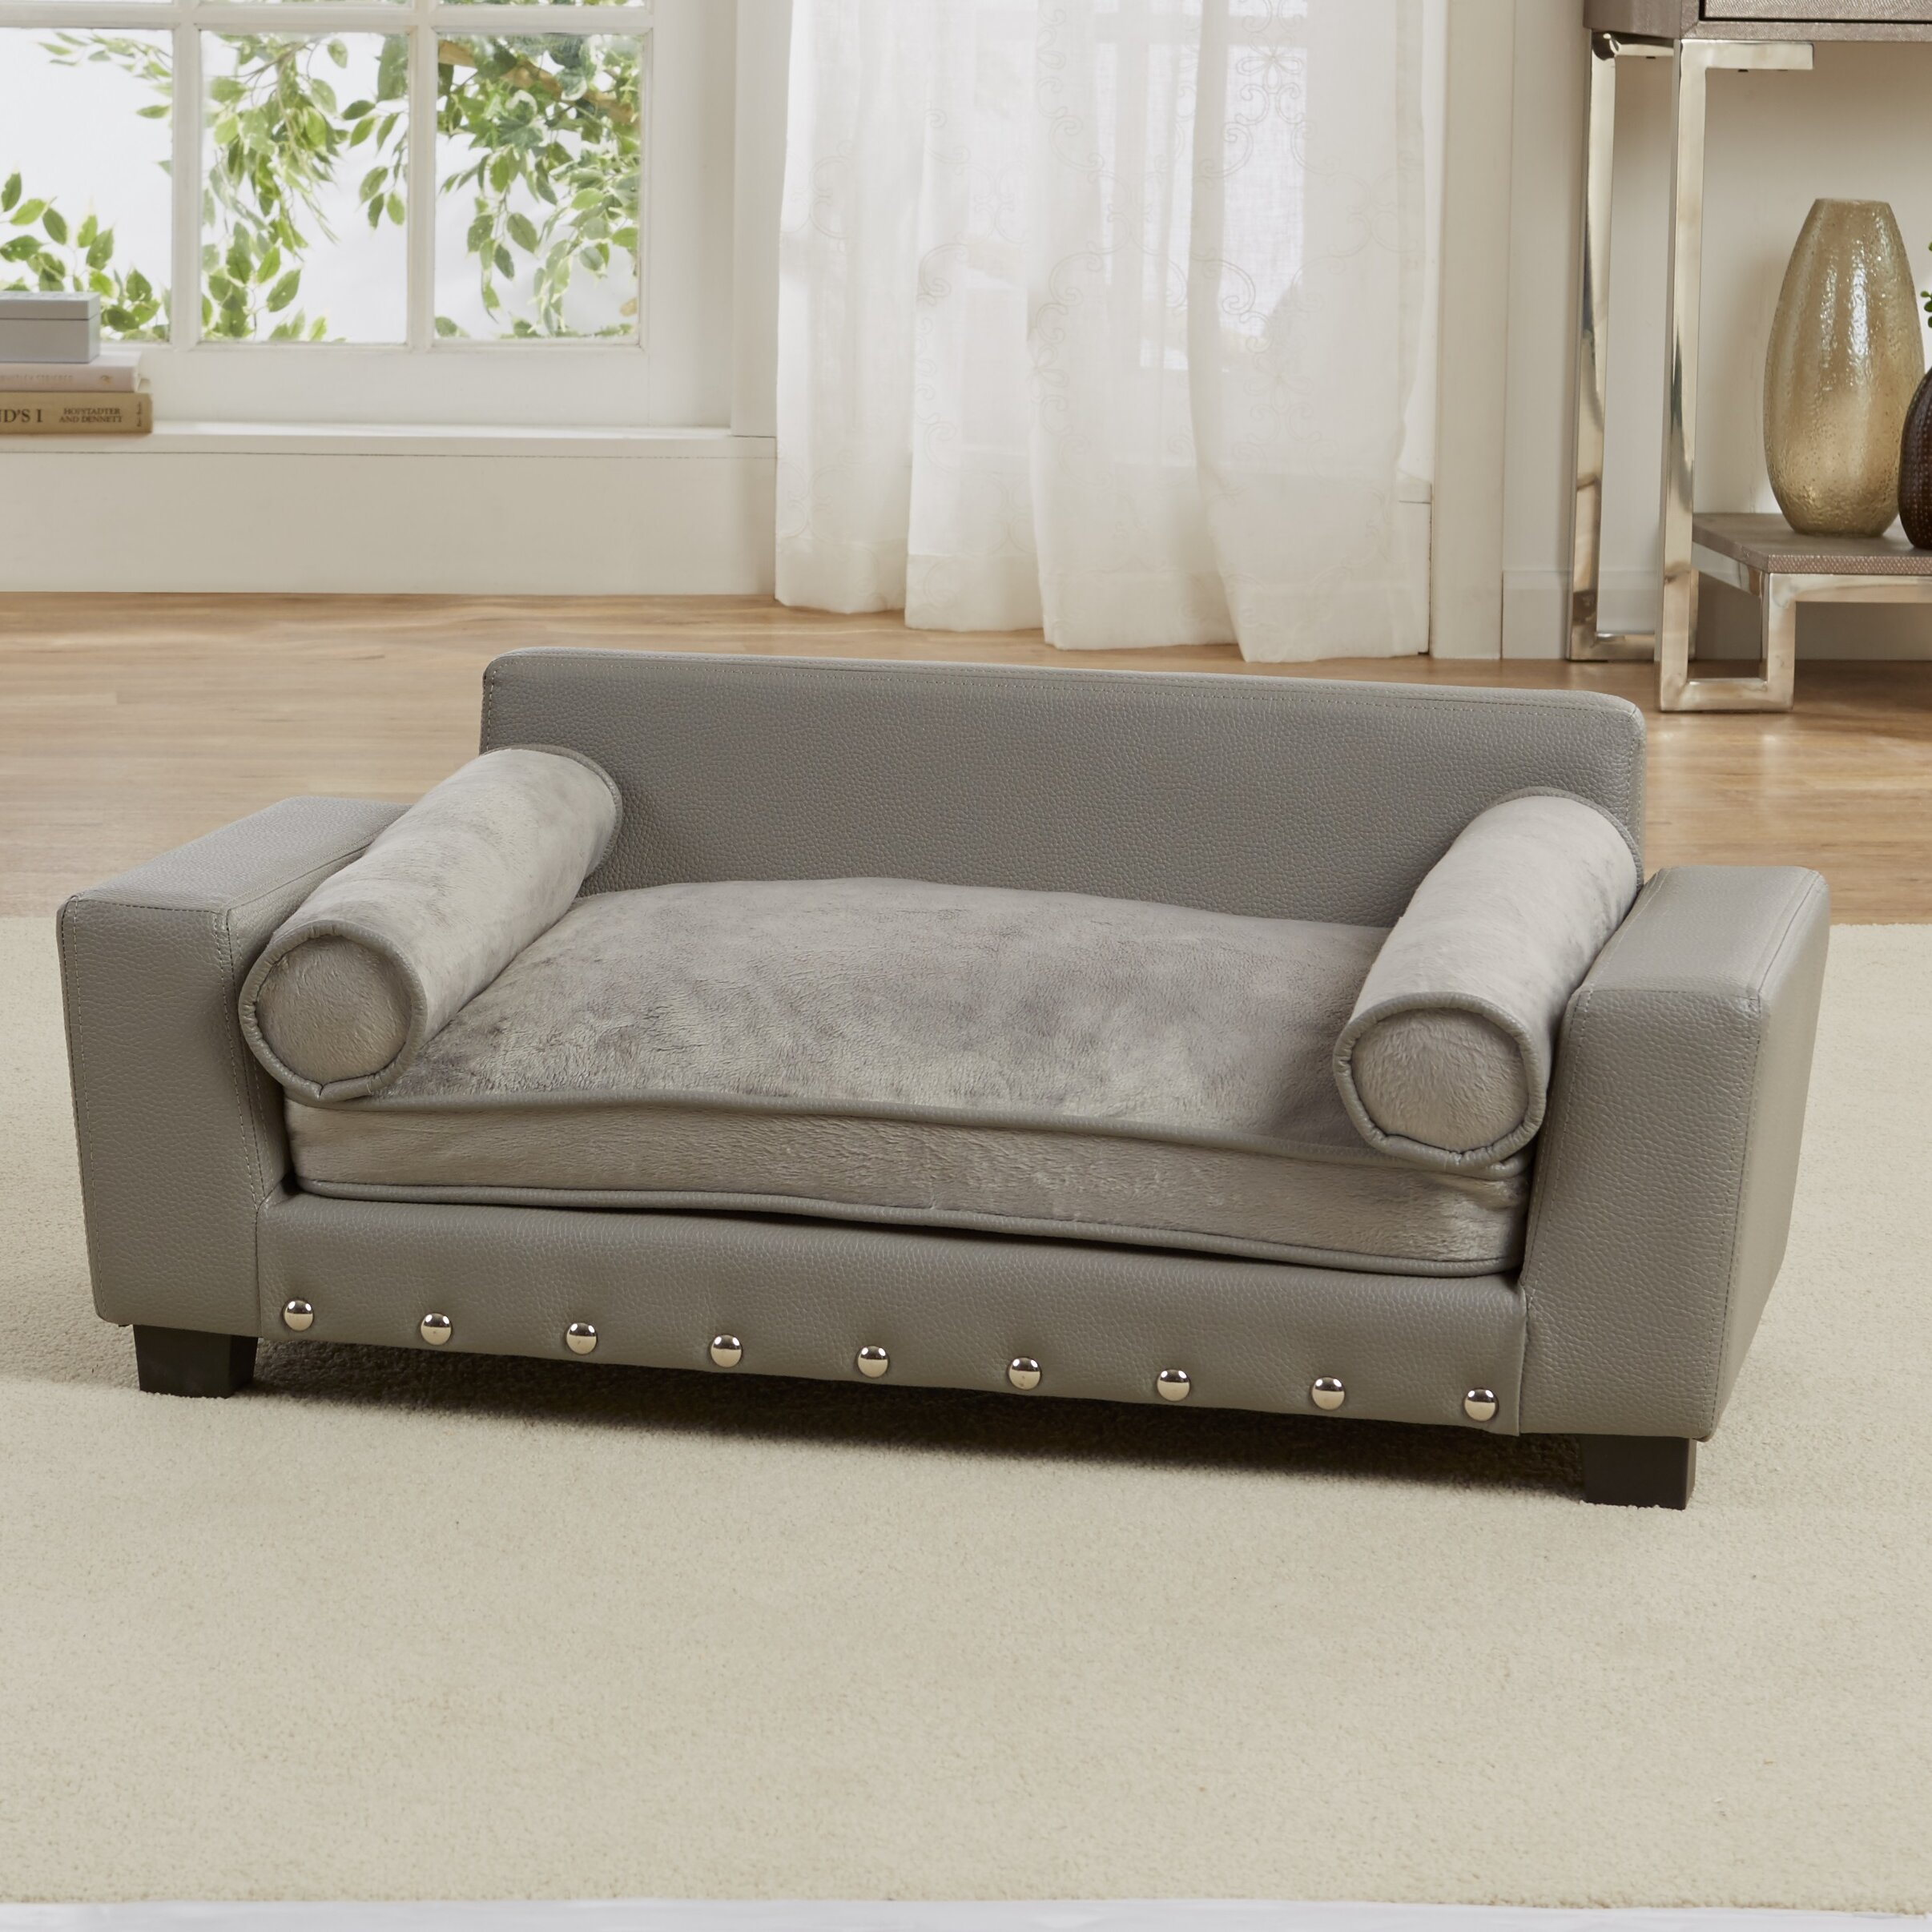 Groovy Elevated Dog Beds Youll Love In 2019 Wayfair Home Interior And Landscaping Ologienasavecom